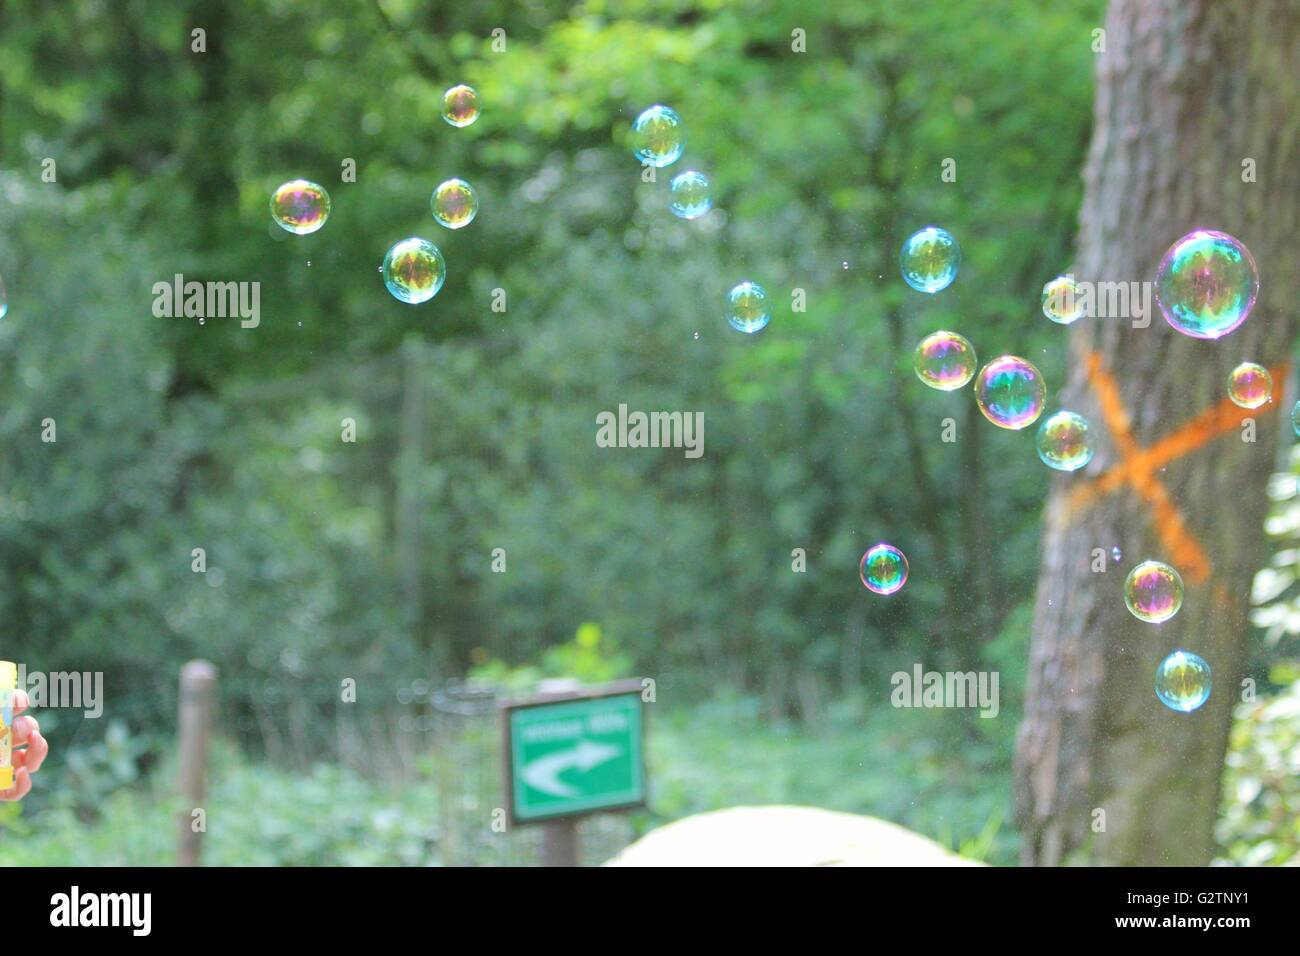 Bursting bubbles in the forest - Stock Image